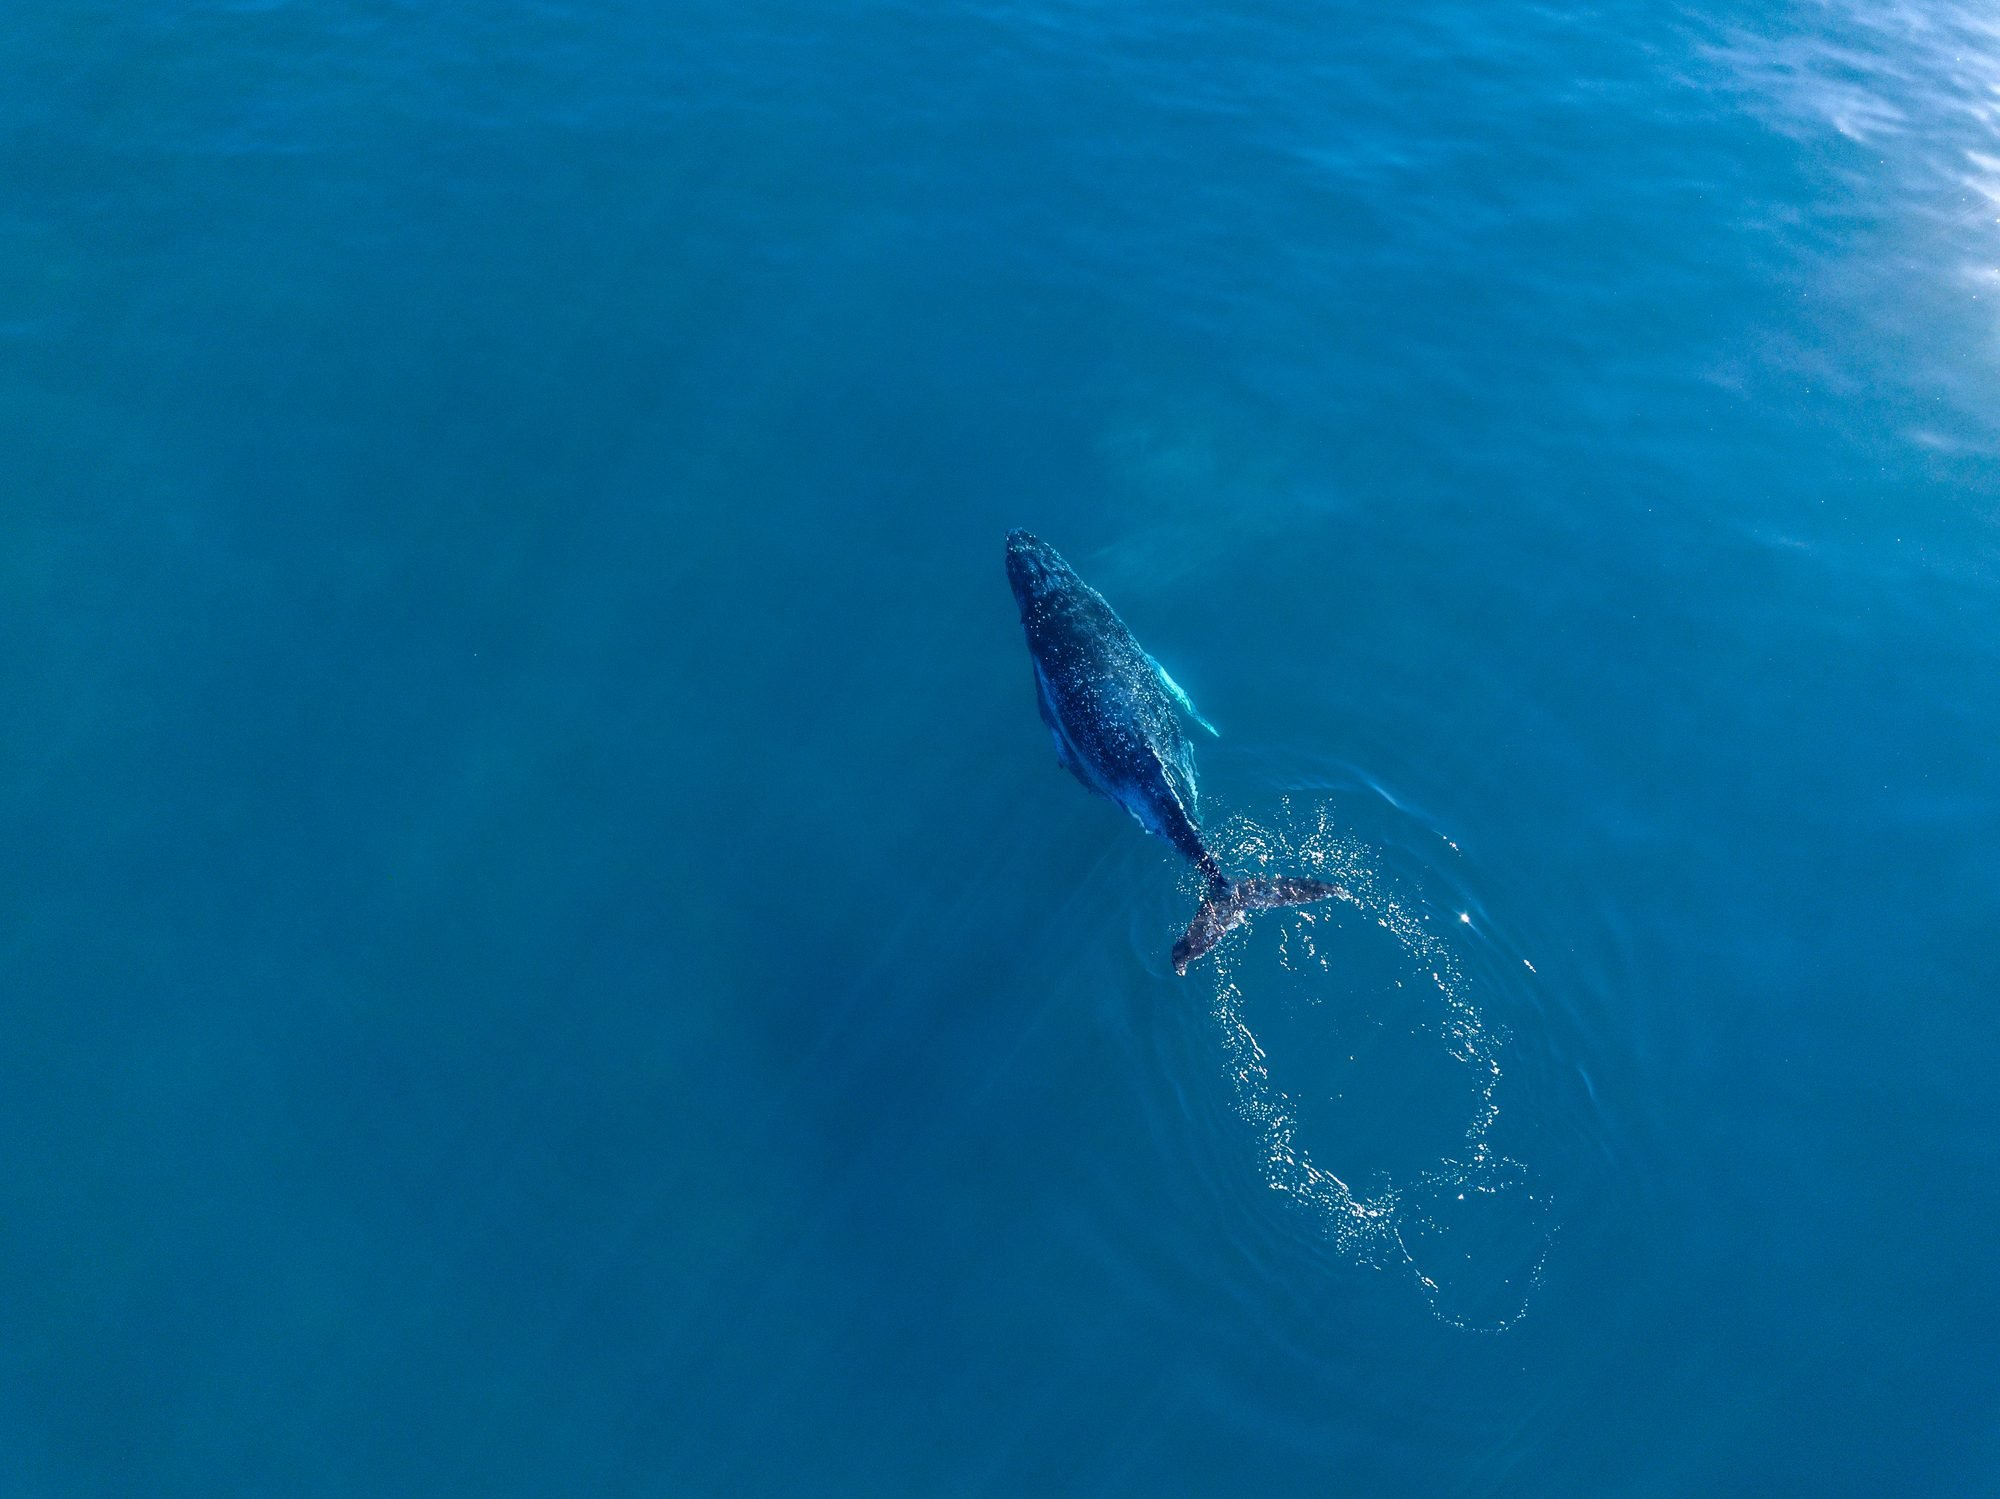 Humpback whales swimming in Blue water in the early morning sunlight